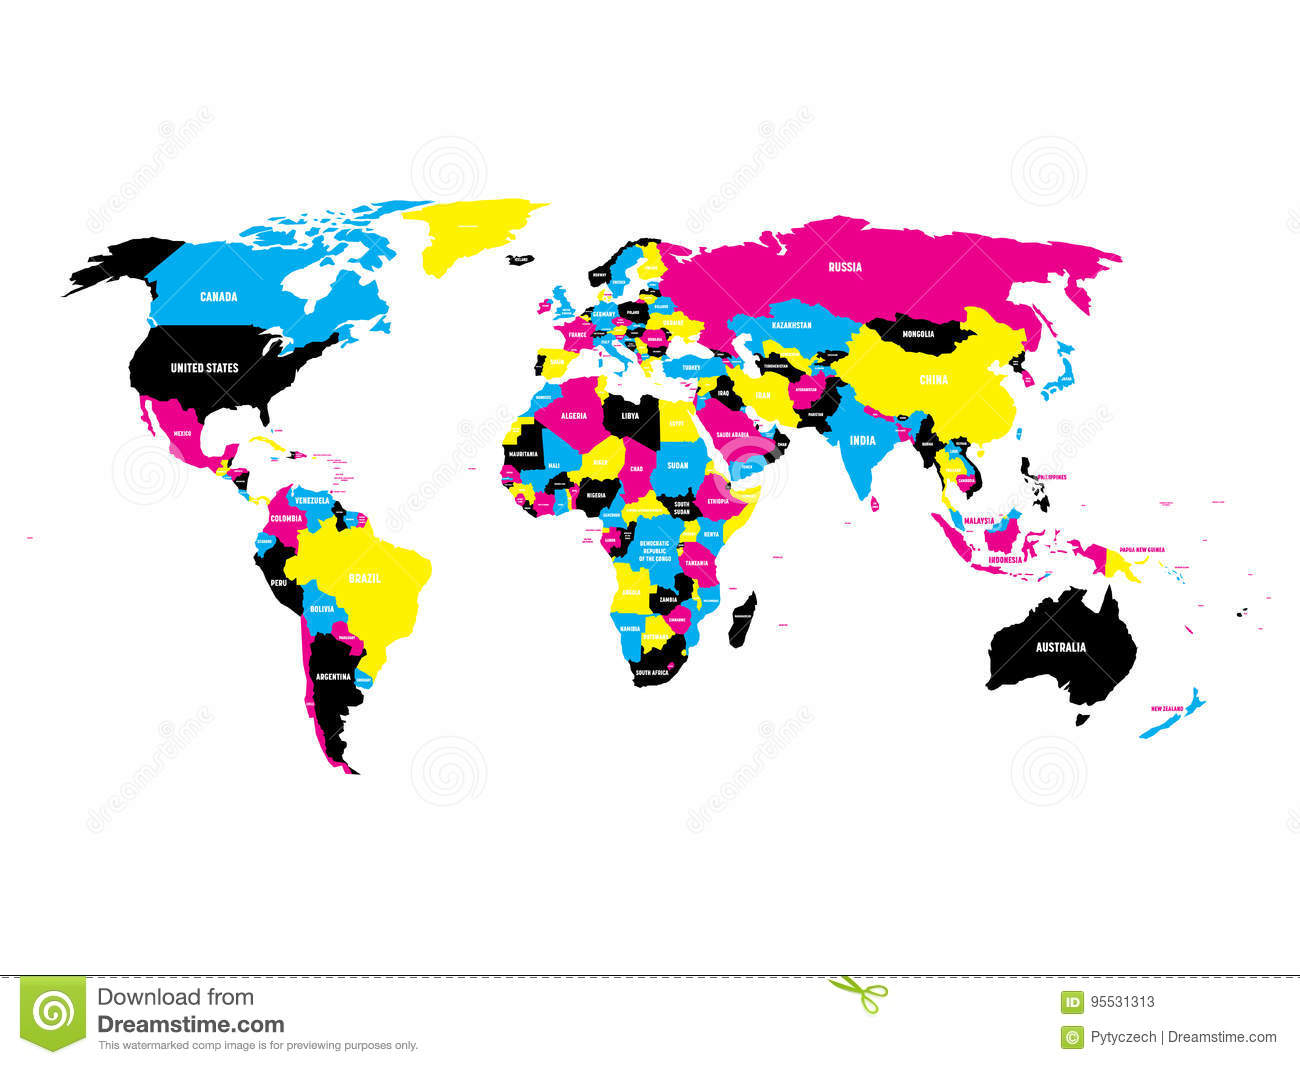 World Map To Color And Label.Political Map Of World In Cmyk Colors With Country Name Labels